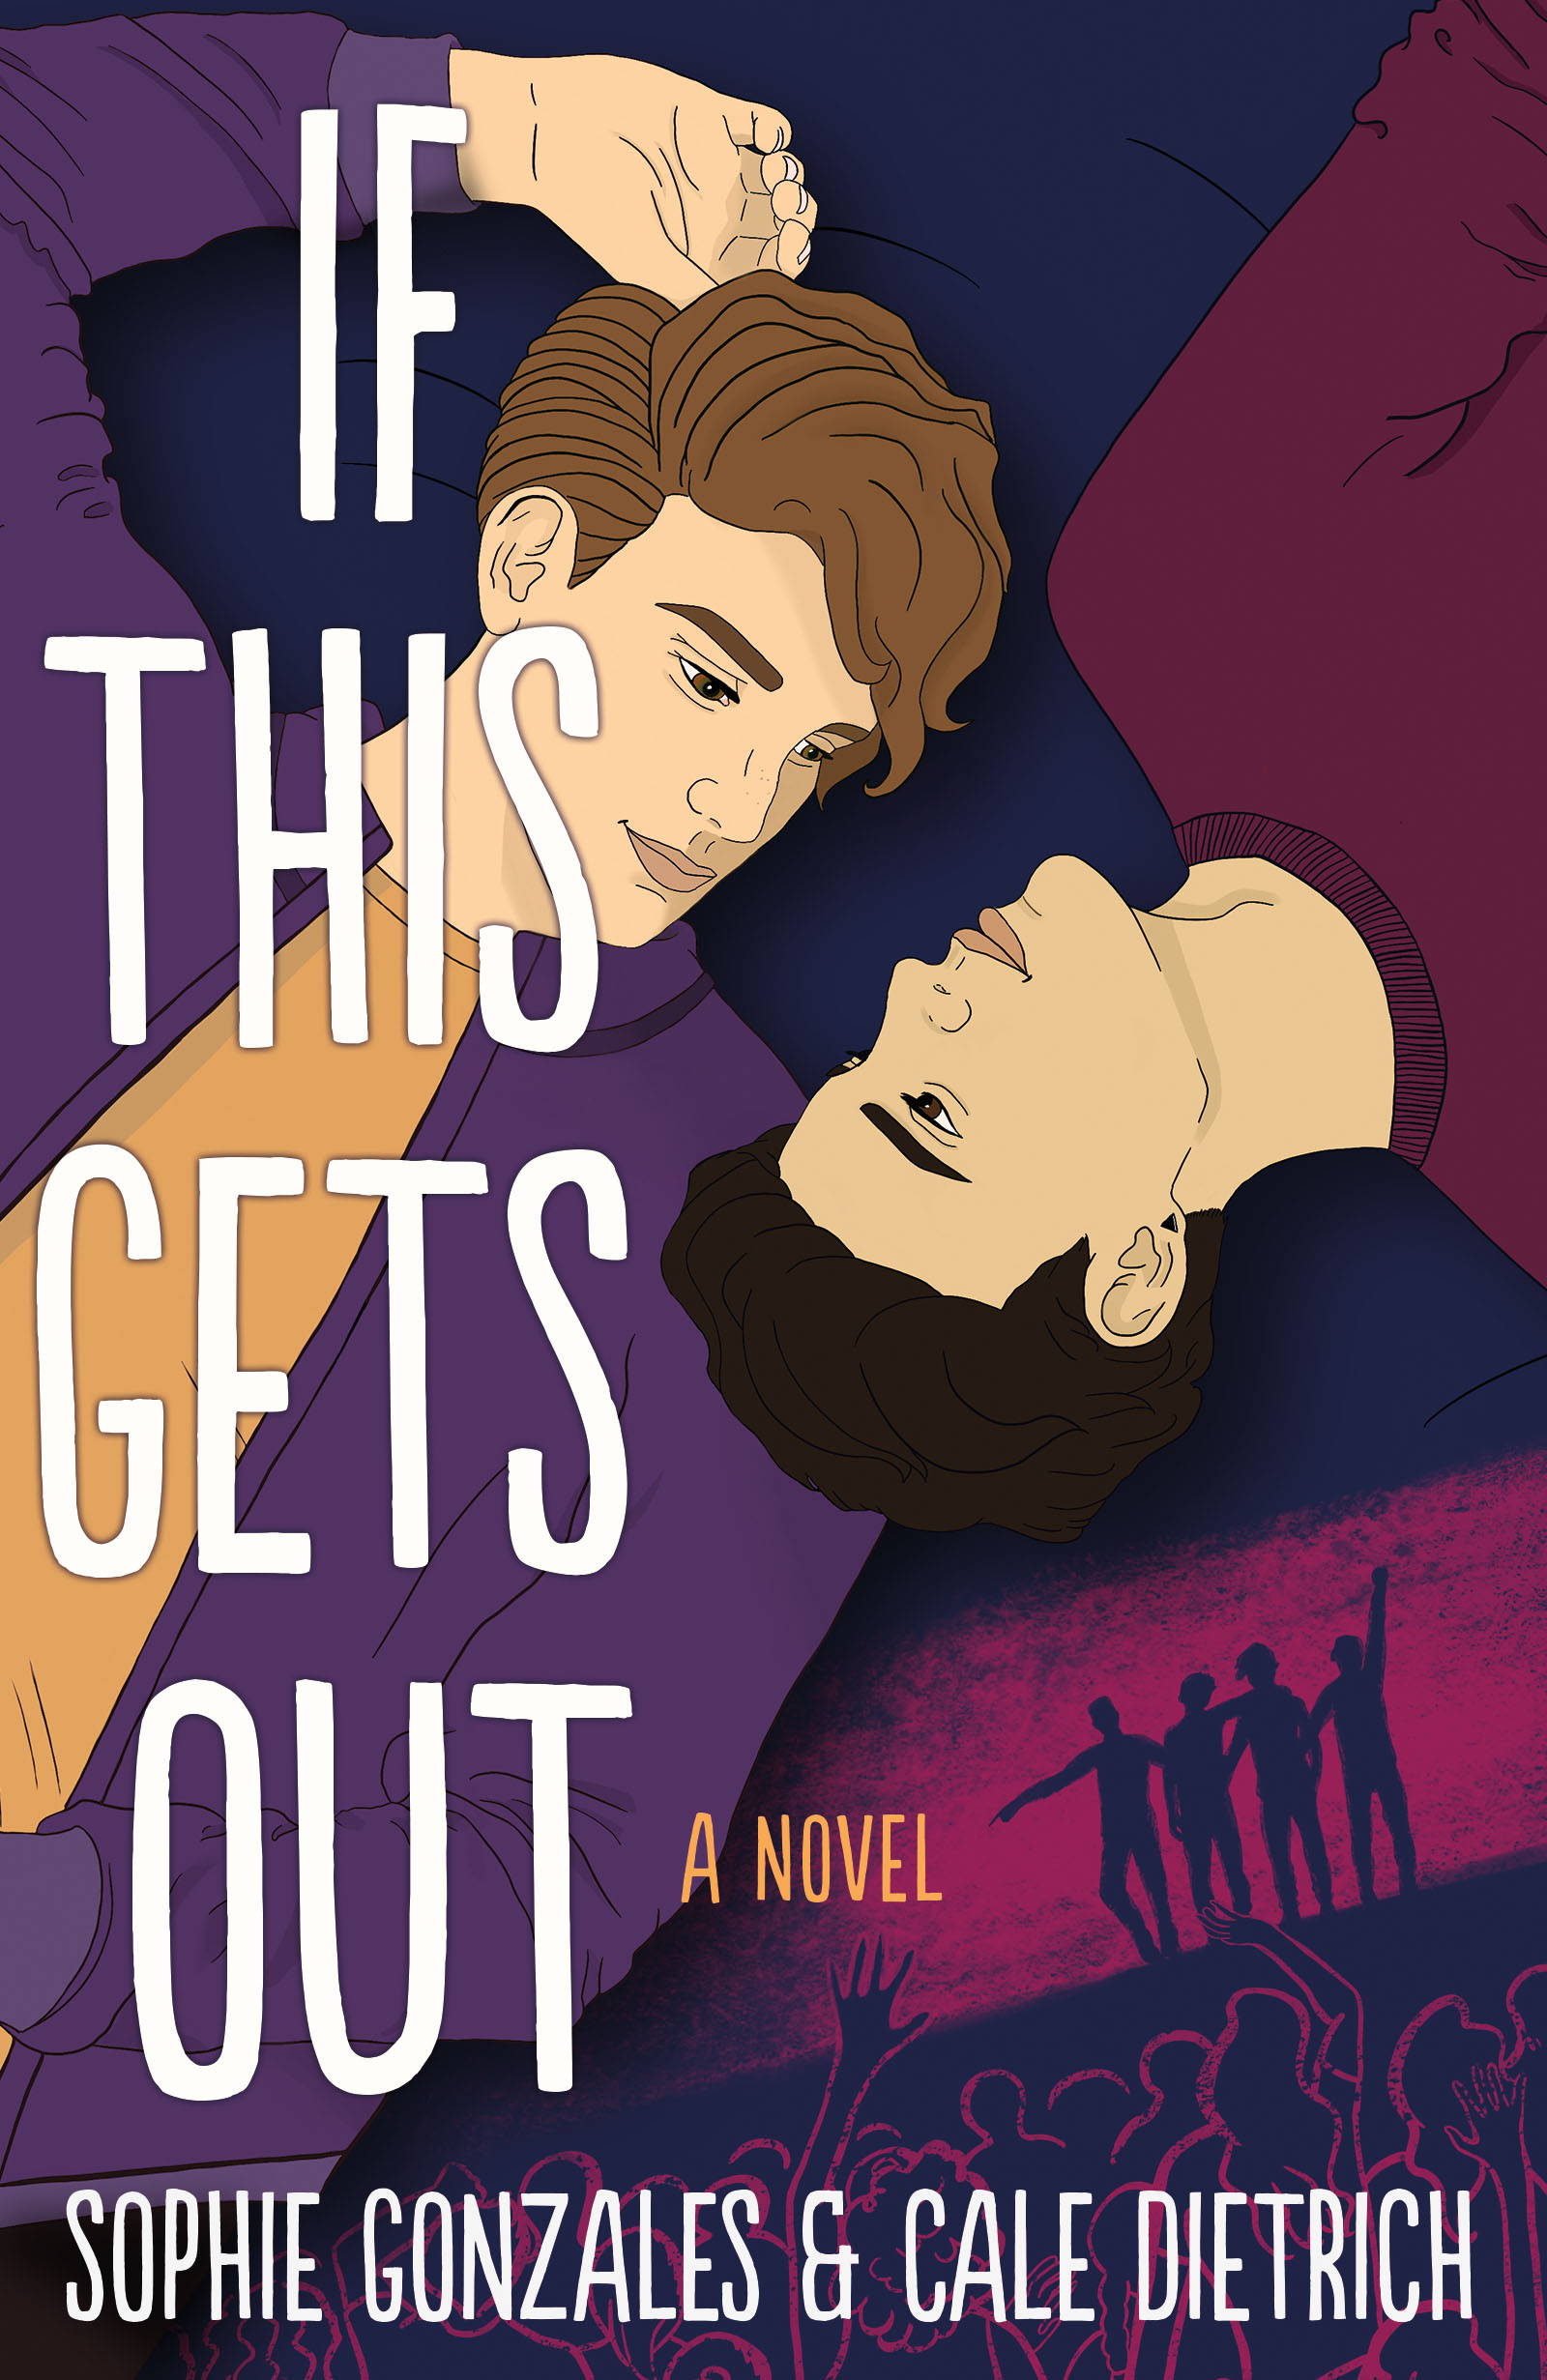 When Will If This Gets Out Release? Sophie Gonzales & Cale Dietrich 2021 New Releases